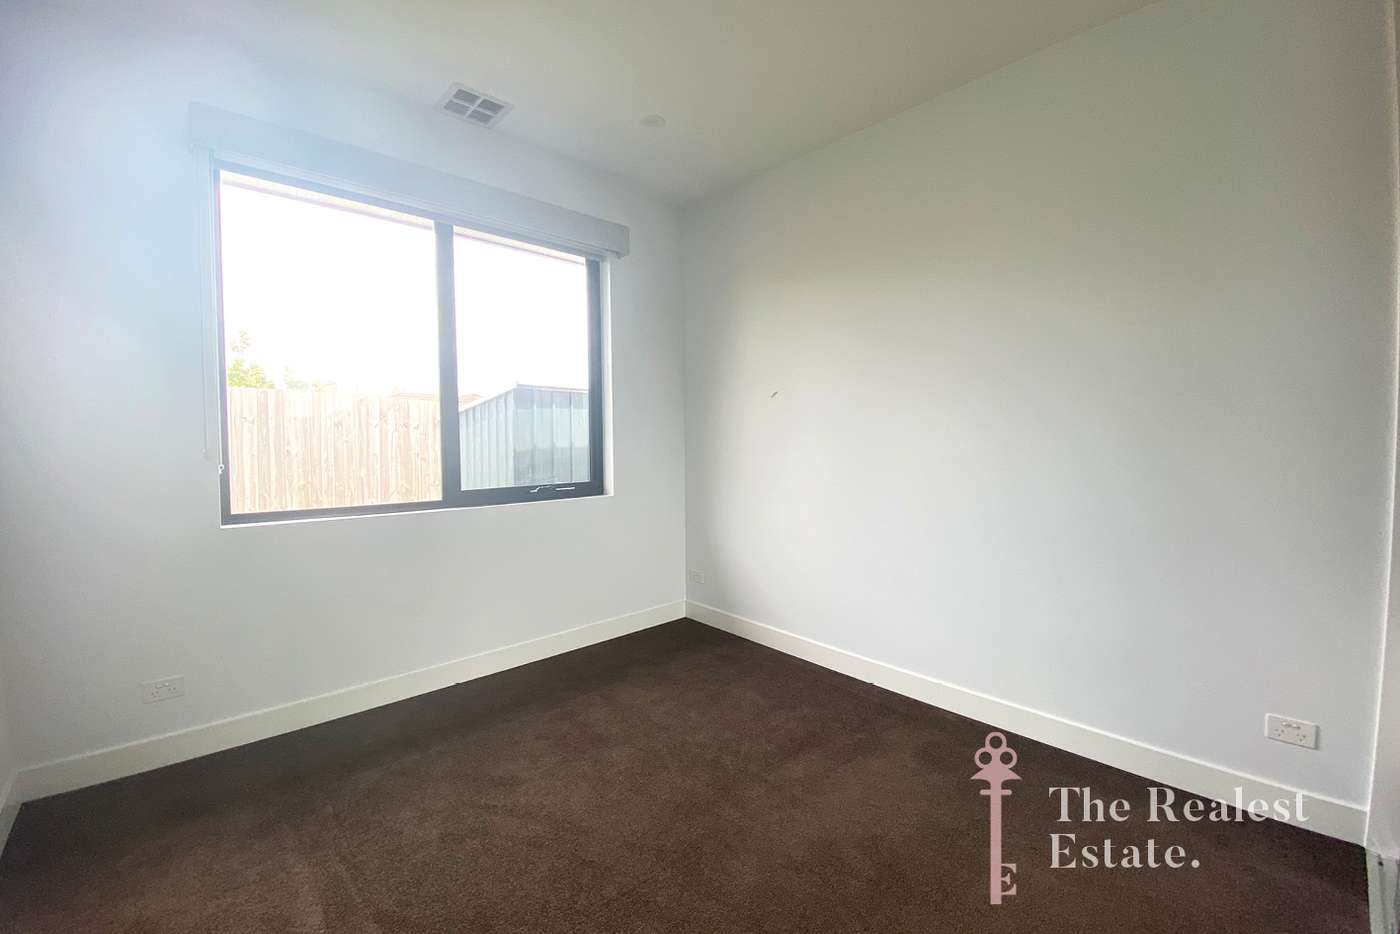 Seventh view of Homely townhouse listing, 3/20 Barunah Street, Glenroy VIC 3046